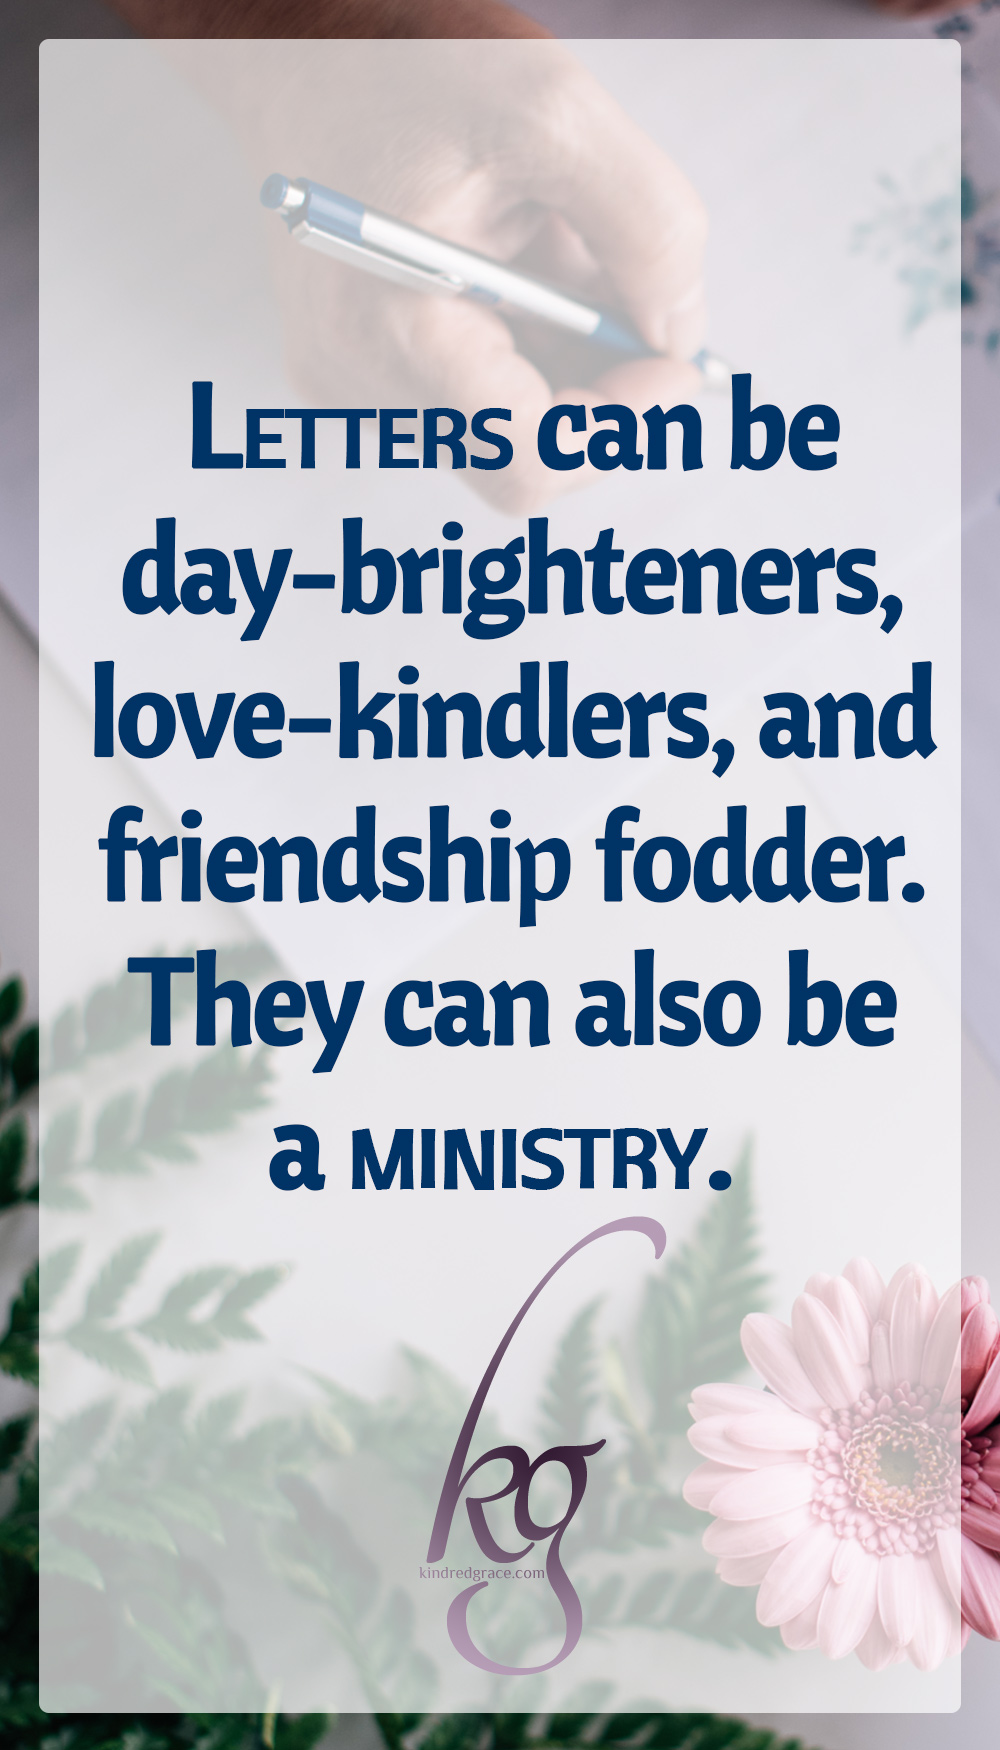 Here we are in the age of instant communication, and letters are no less potent than they were when they were our only option. As a matter of fact, they may be even more effective today, in contrast to the common text message. Letters can be day-brighteners, love-kindlers, and friendship fodder. They can also be a ministry. via @KindredGrace